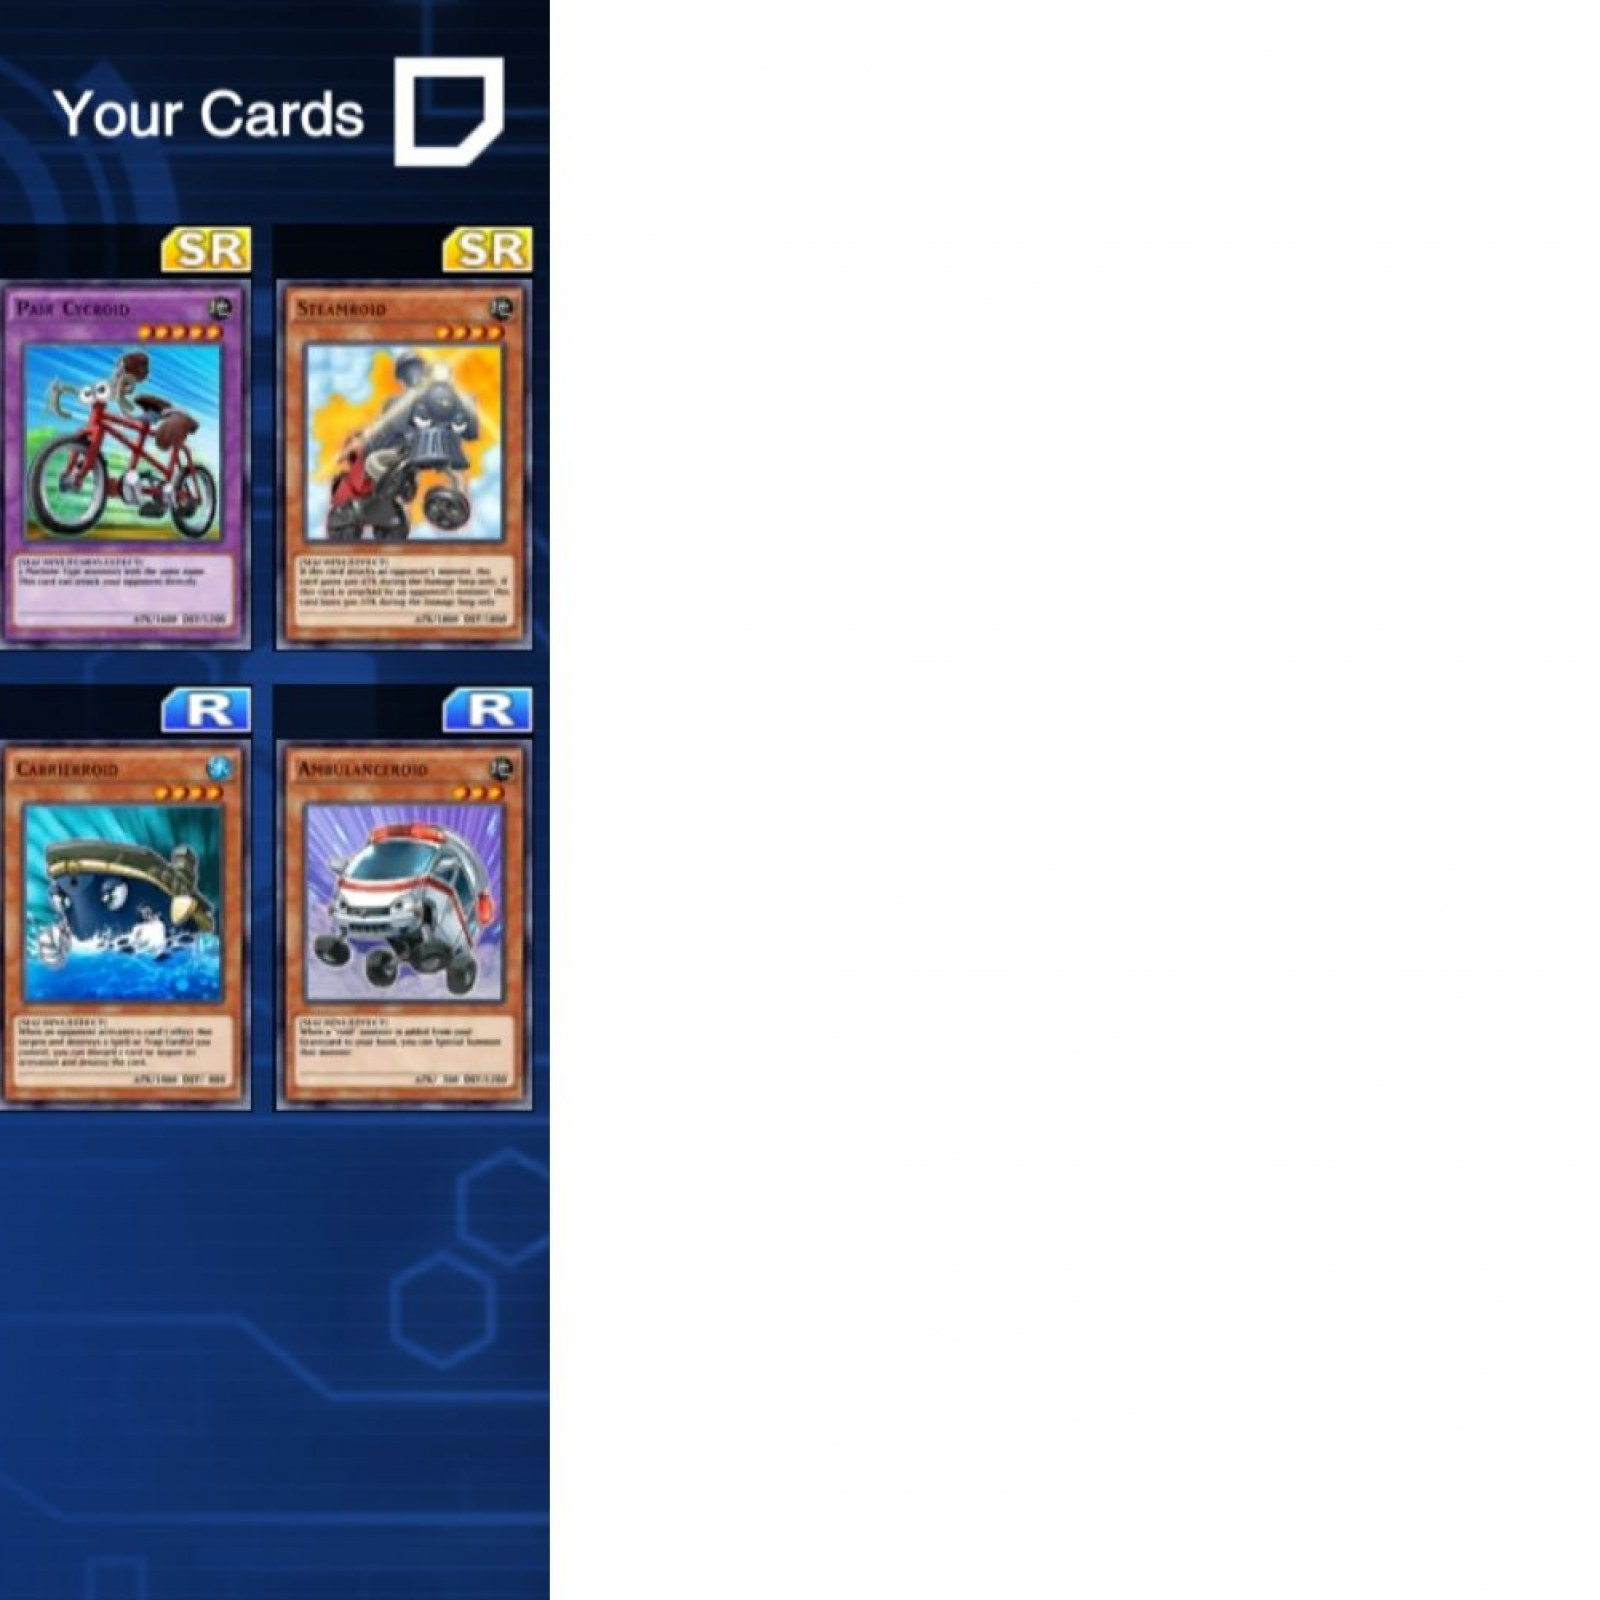 Yu-Gi-Oh! Duel Links' Syrus Truesdale: Skills, Rewards and